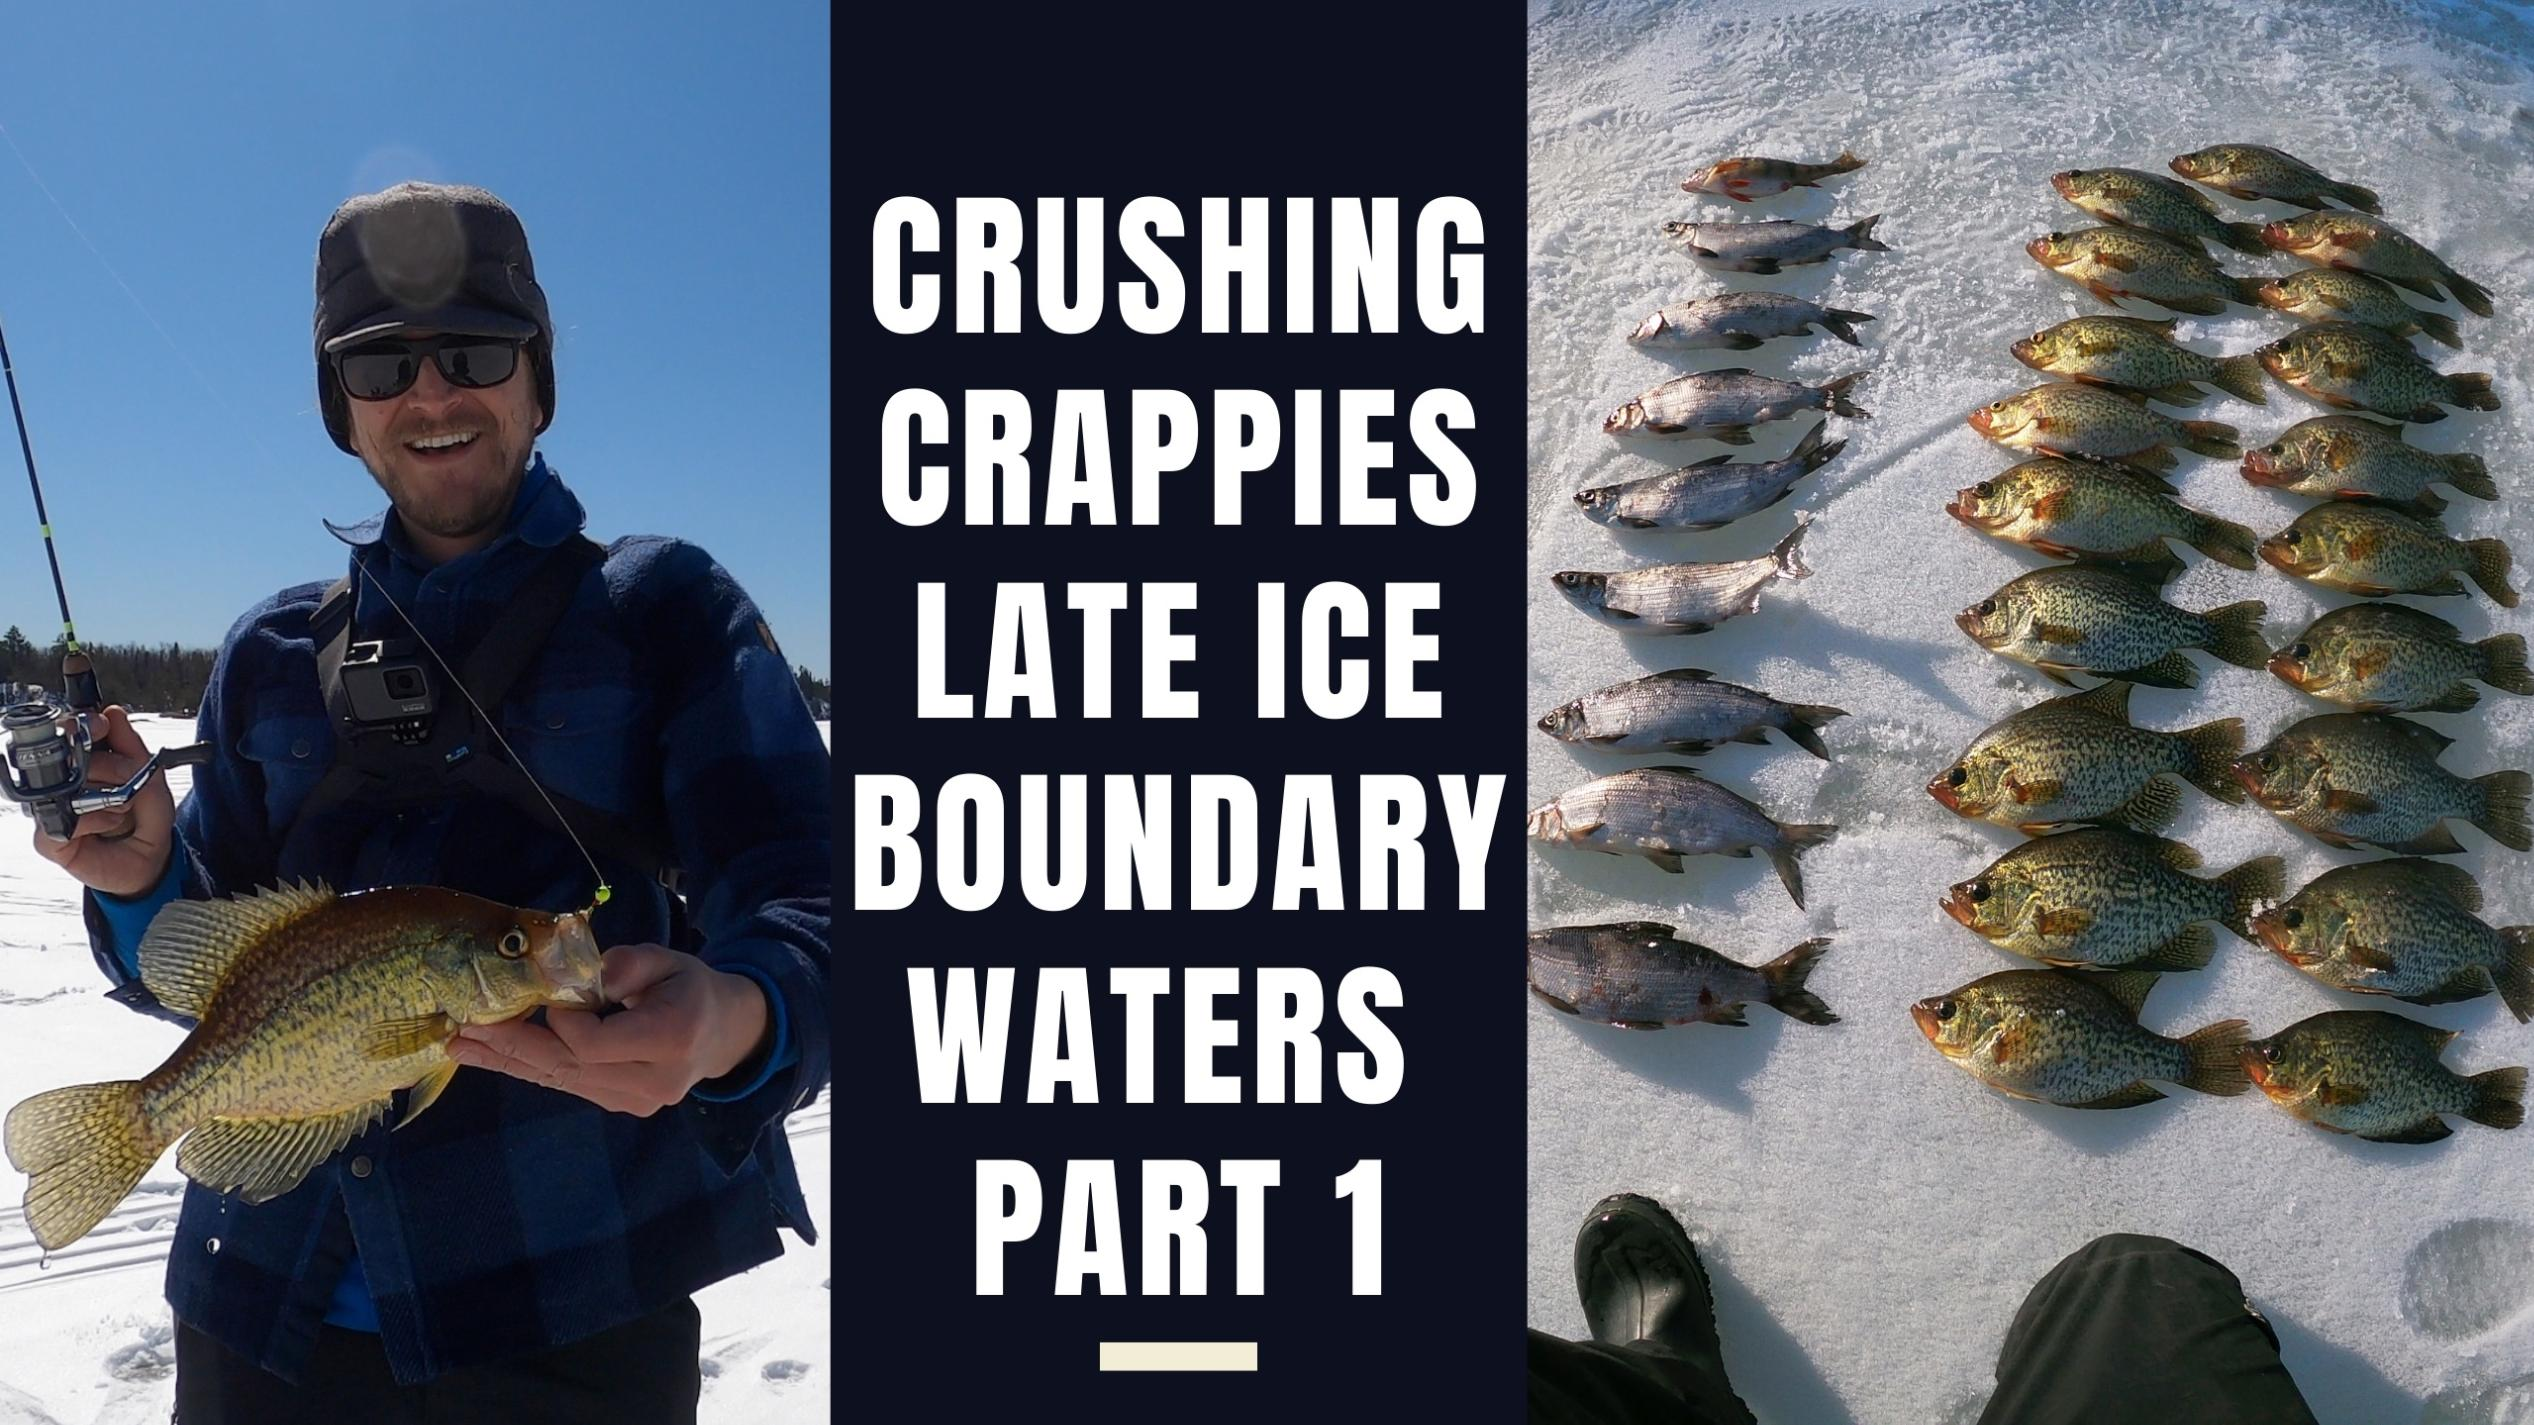 Crushing Late Ice Crappies in the Boundary Waters